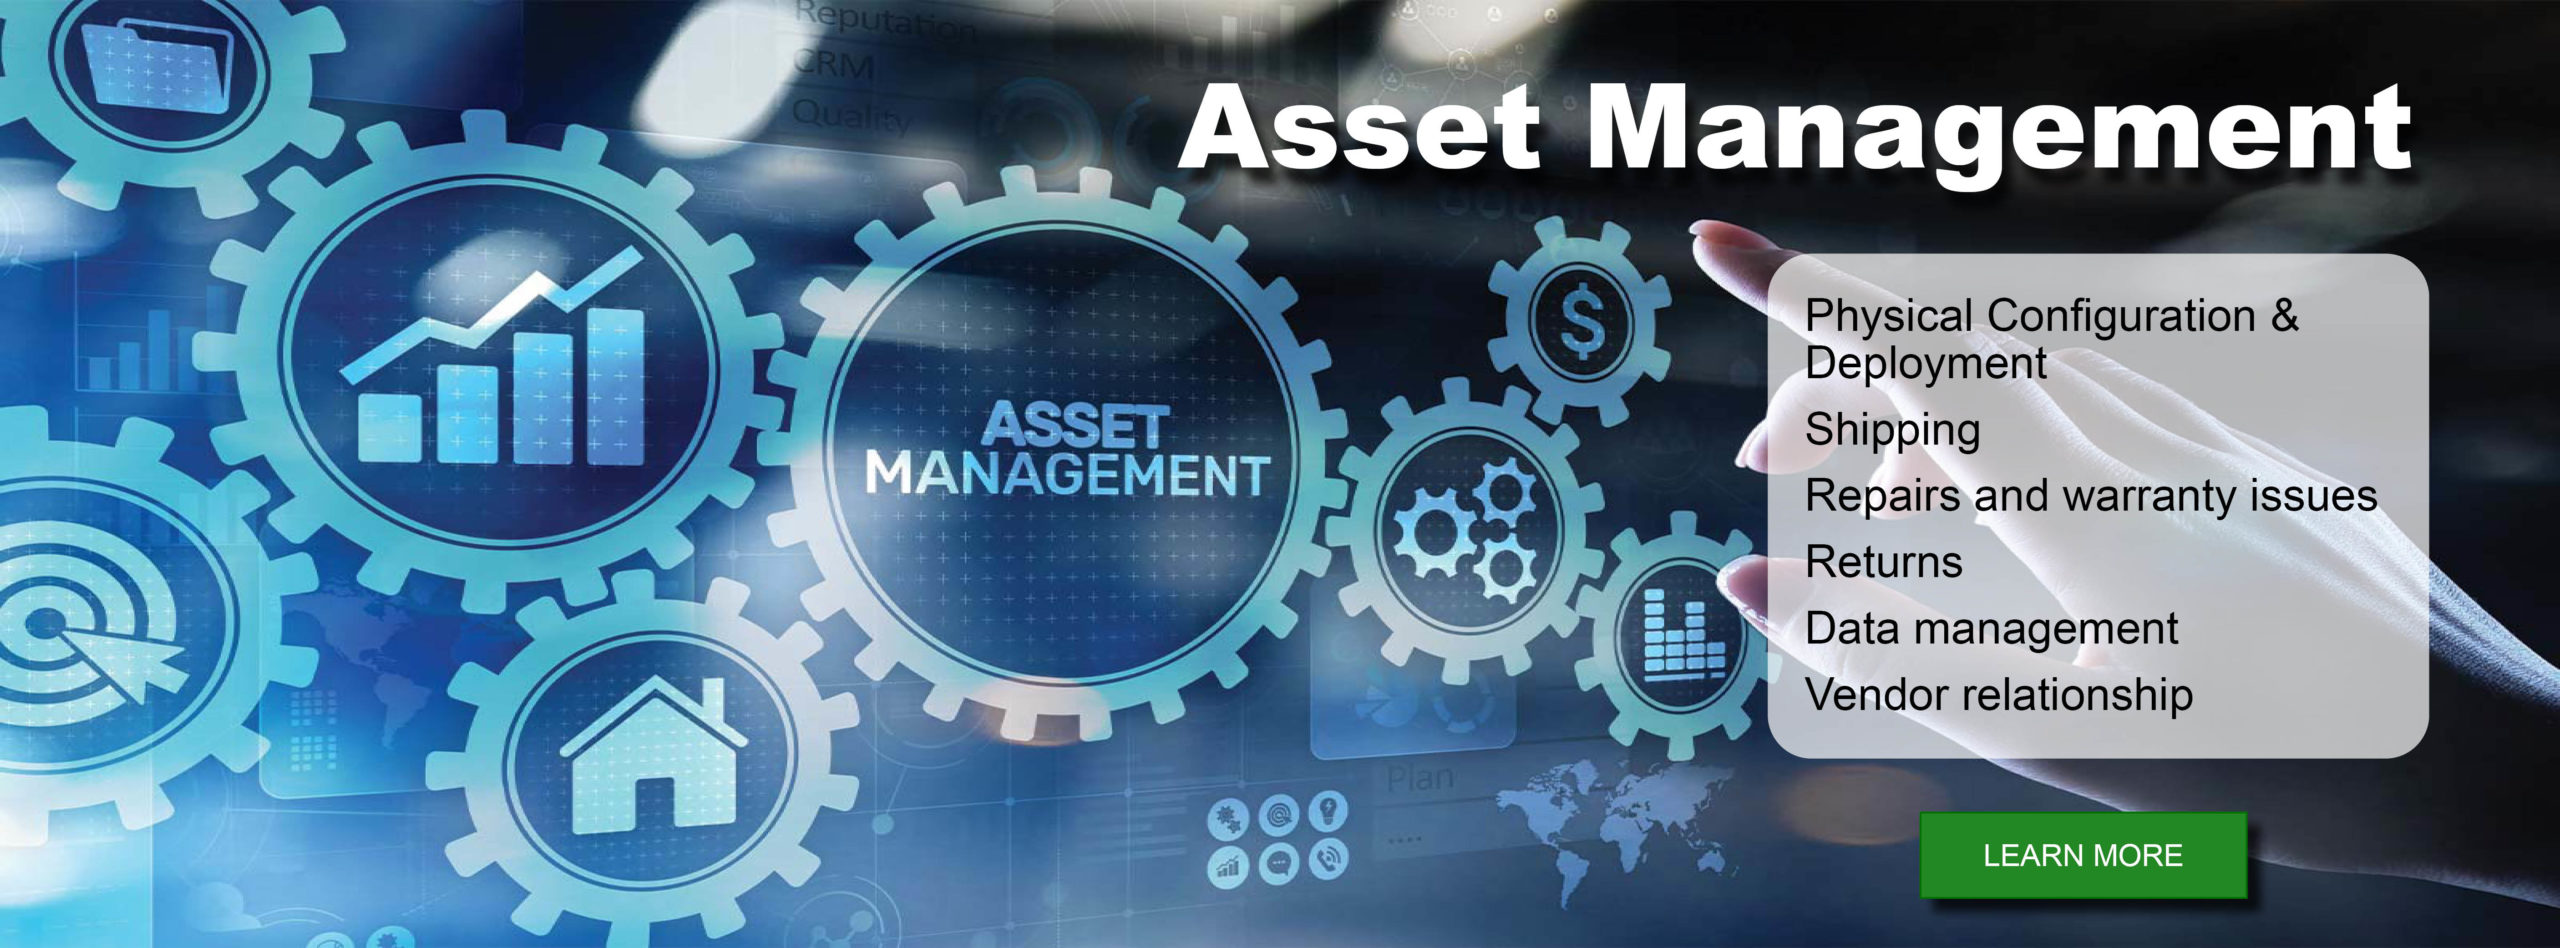 managed services asset management banner #4